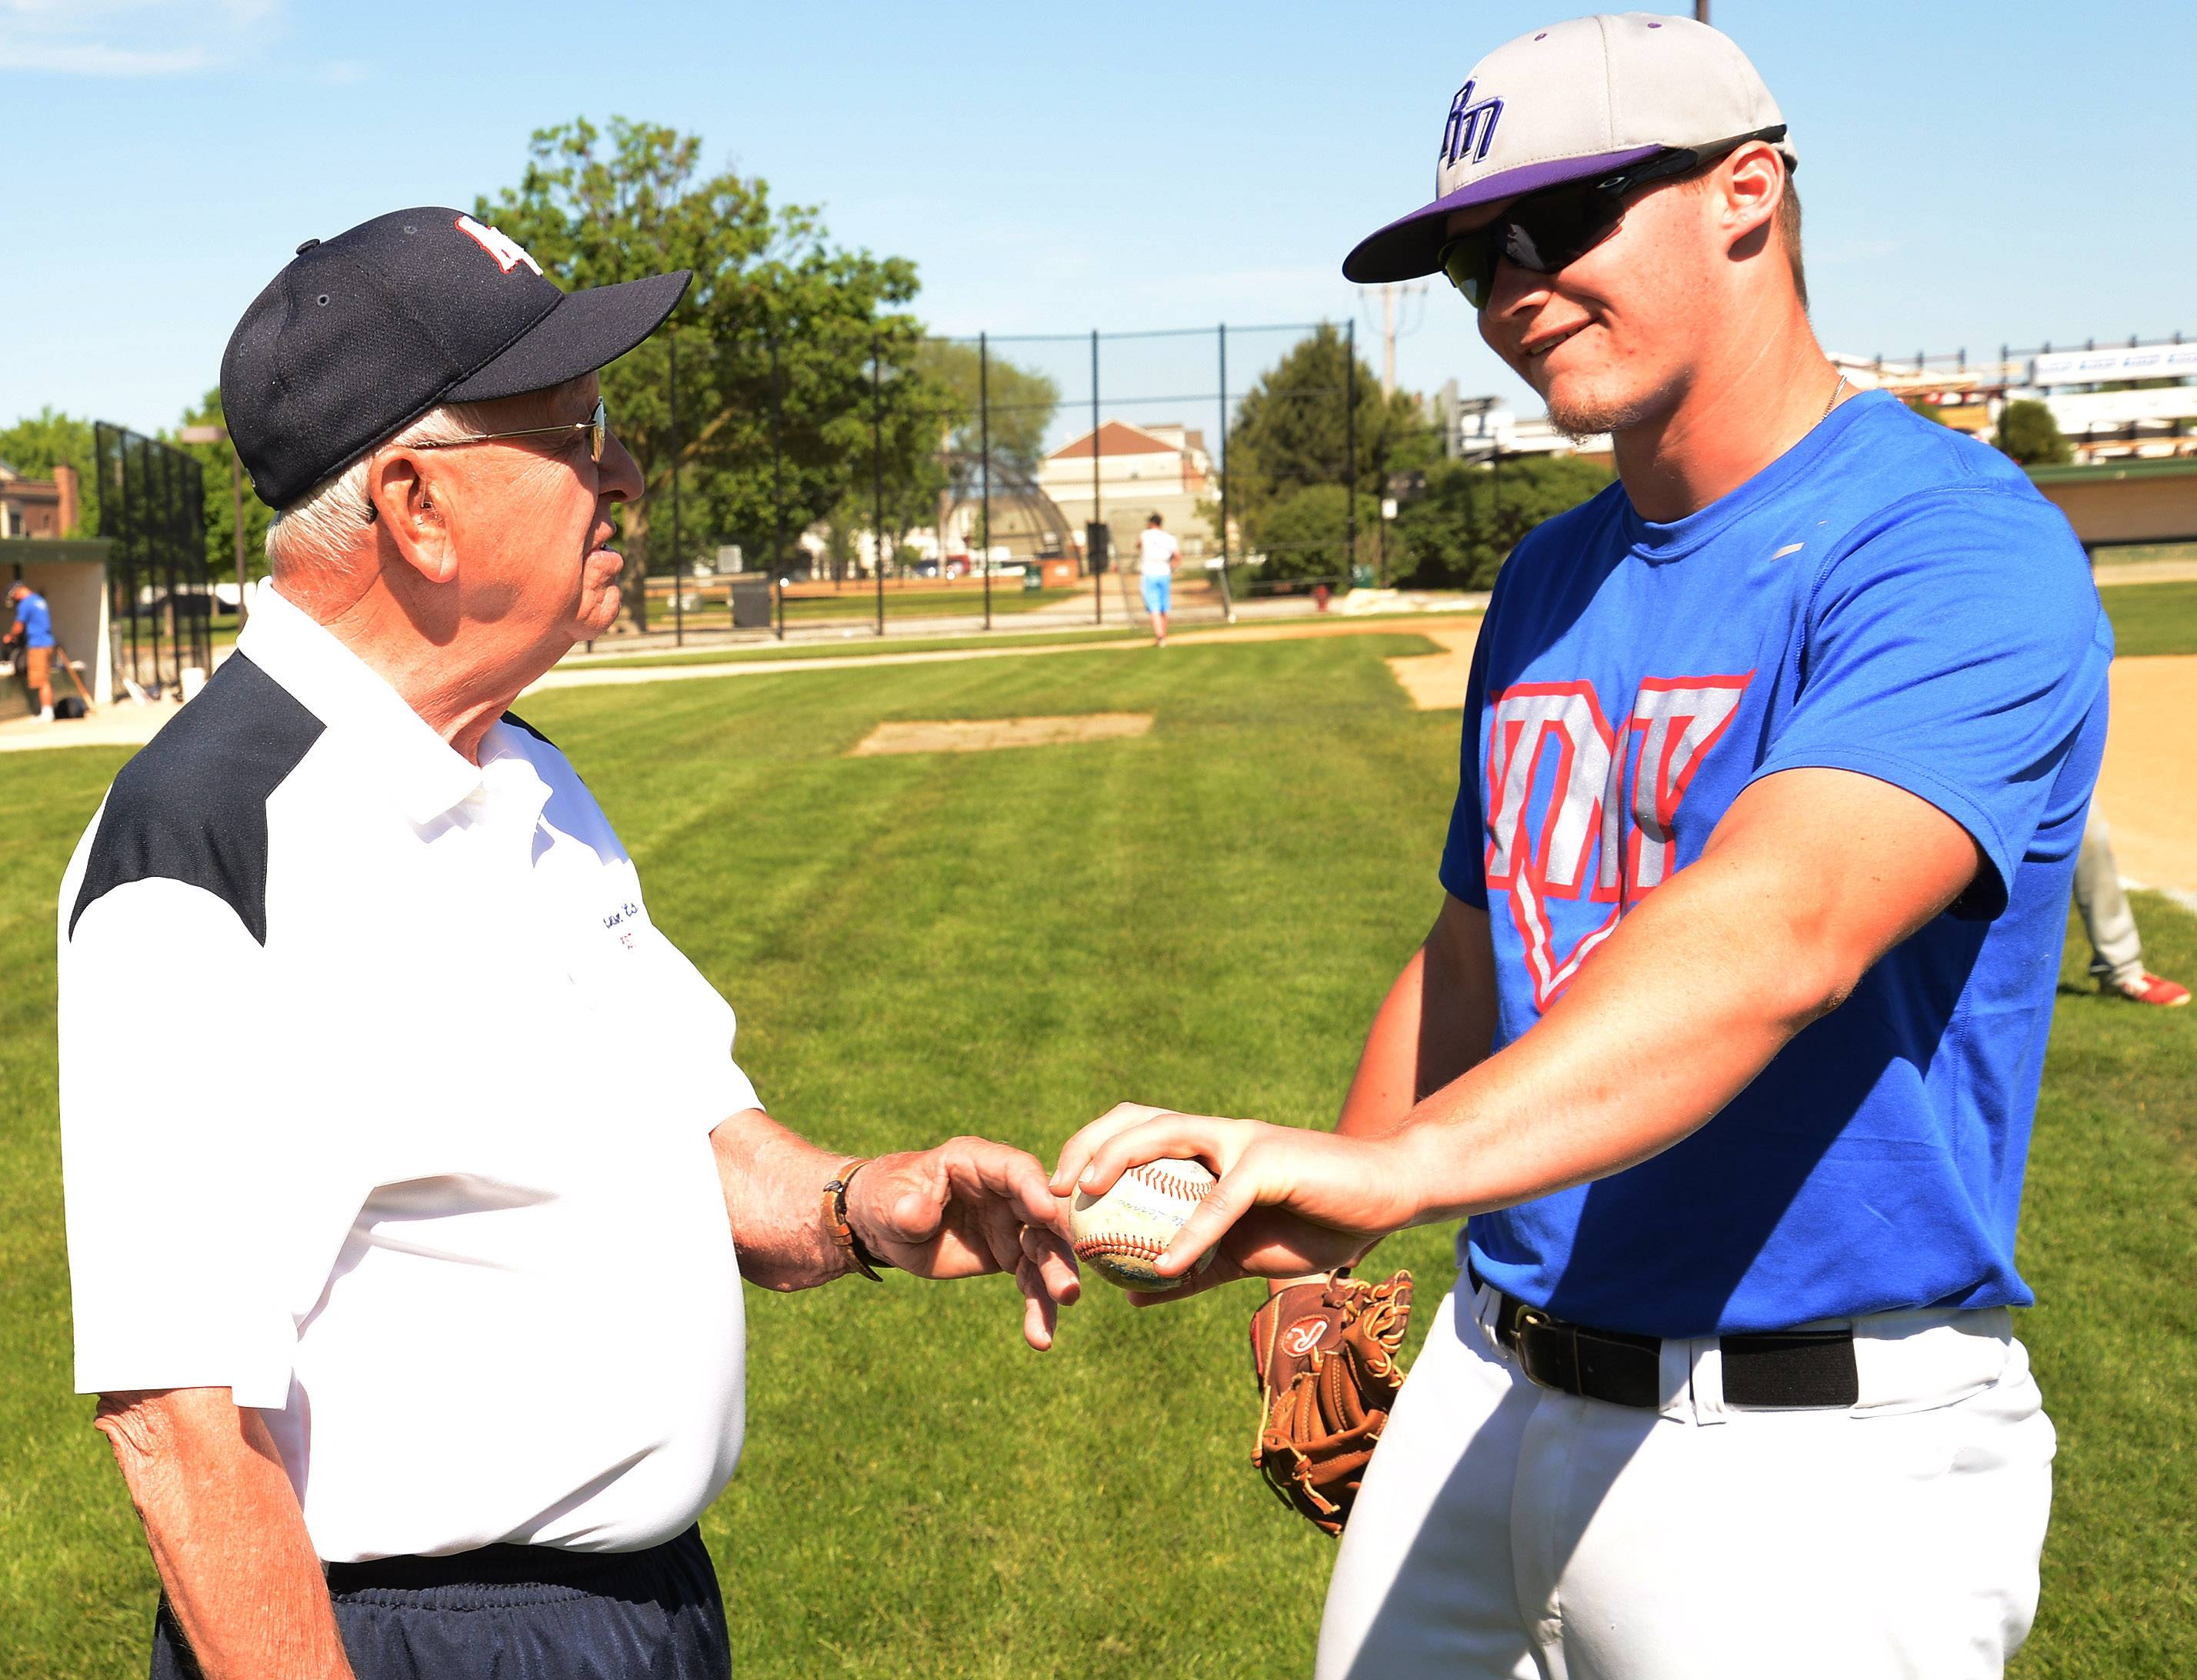 Lloyd Meyer, who is starting his 61st year of coaching American Legion baseball, works with pitcher Erik Schurtz of Arlington Heights.